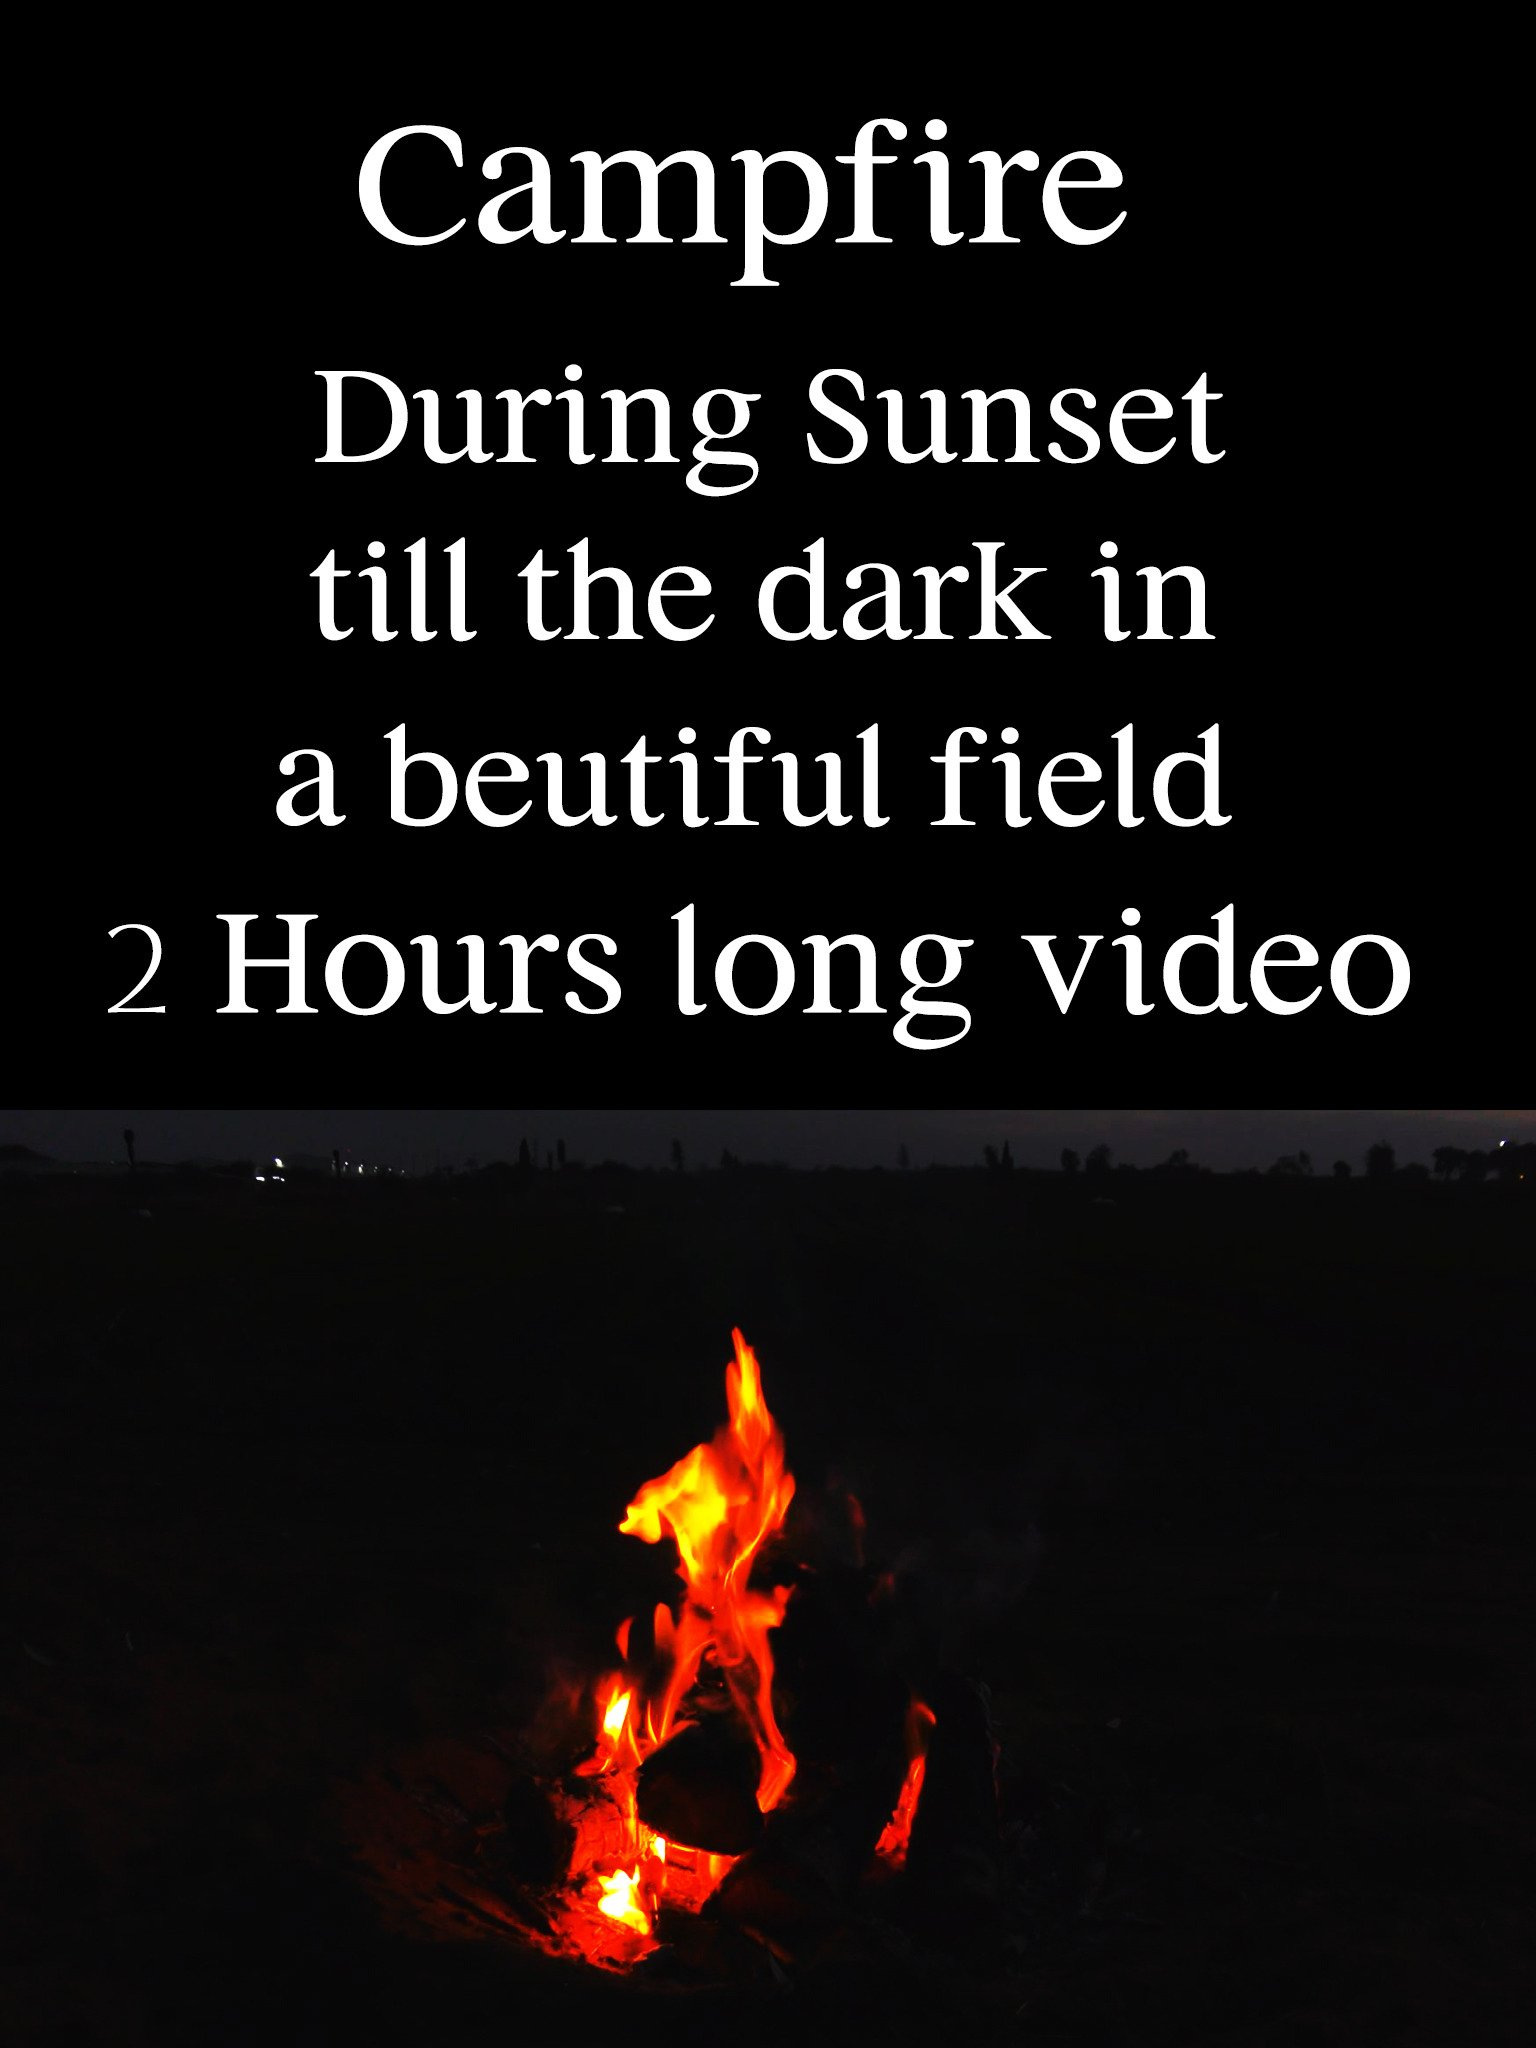 Campfire During Sunset till the dark